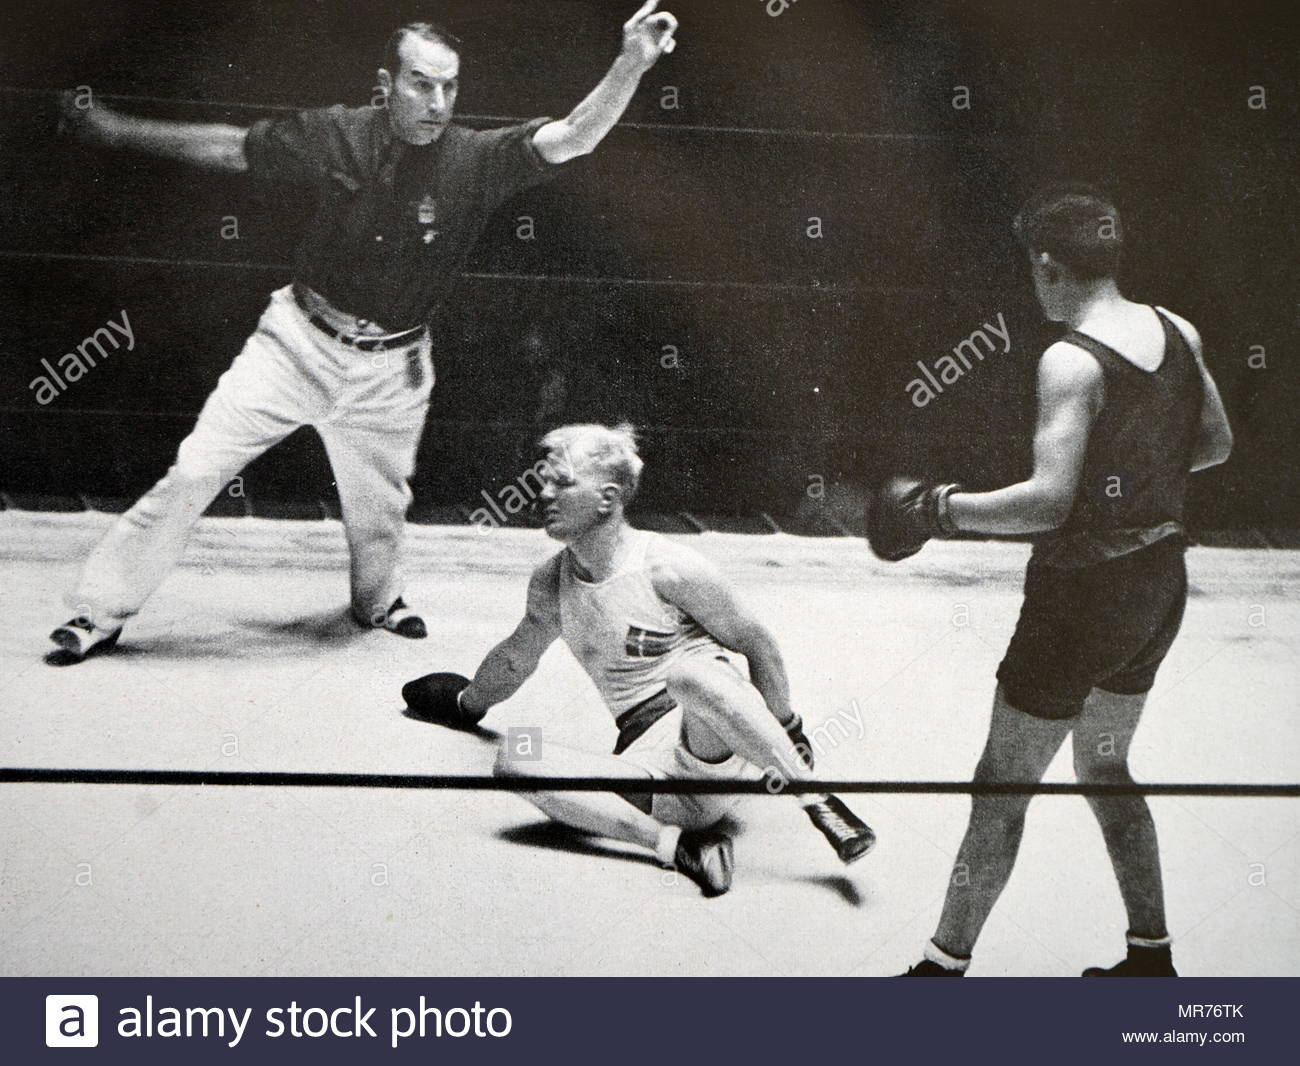 Photograph of David Daniel Carstens (1914 - 1955) from South Africa fighting Peter Oscar Jørgensen (1907 - 1992) from Denmark at the 1932 Olympic games. David Daniel Carstens takes gold in the Light Heavyweight division. - Stock Image